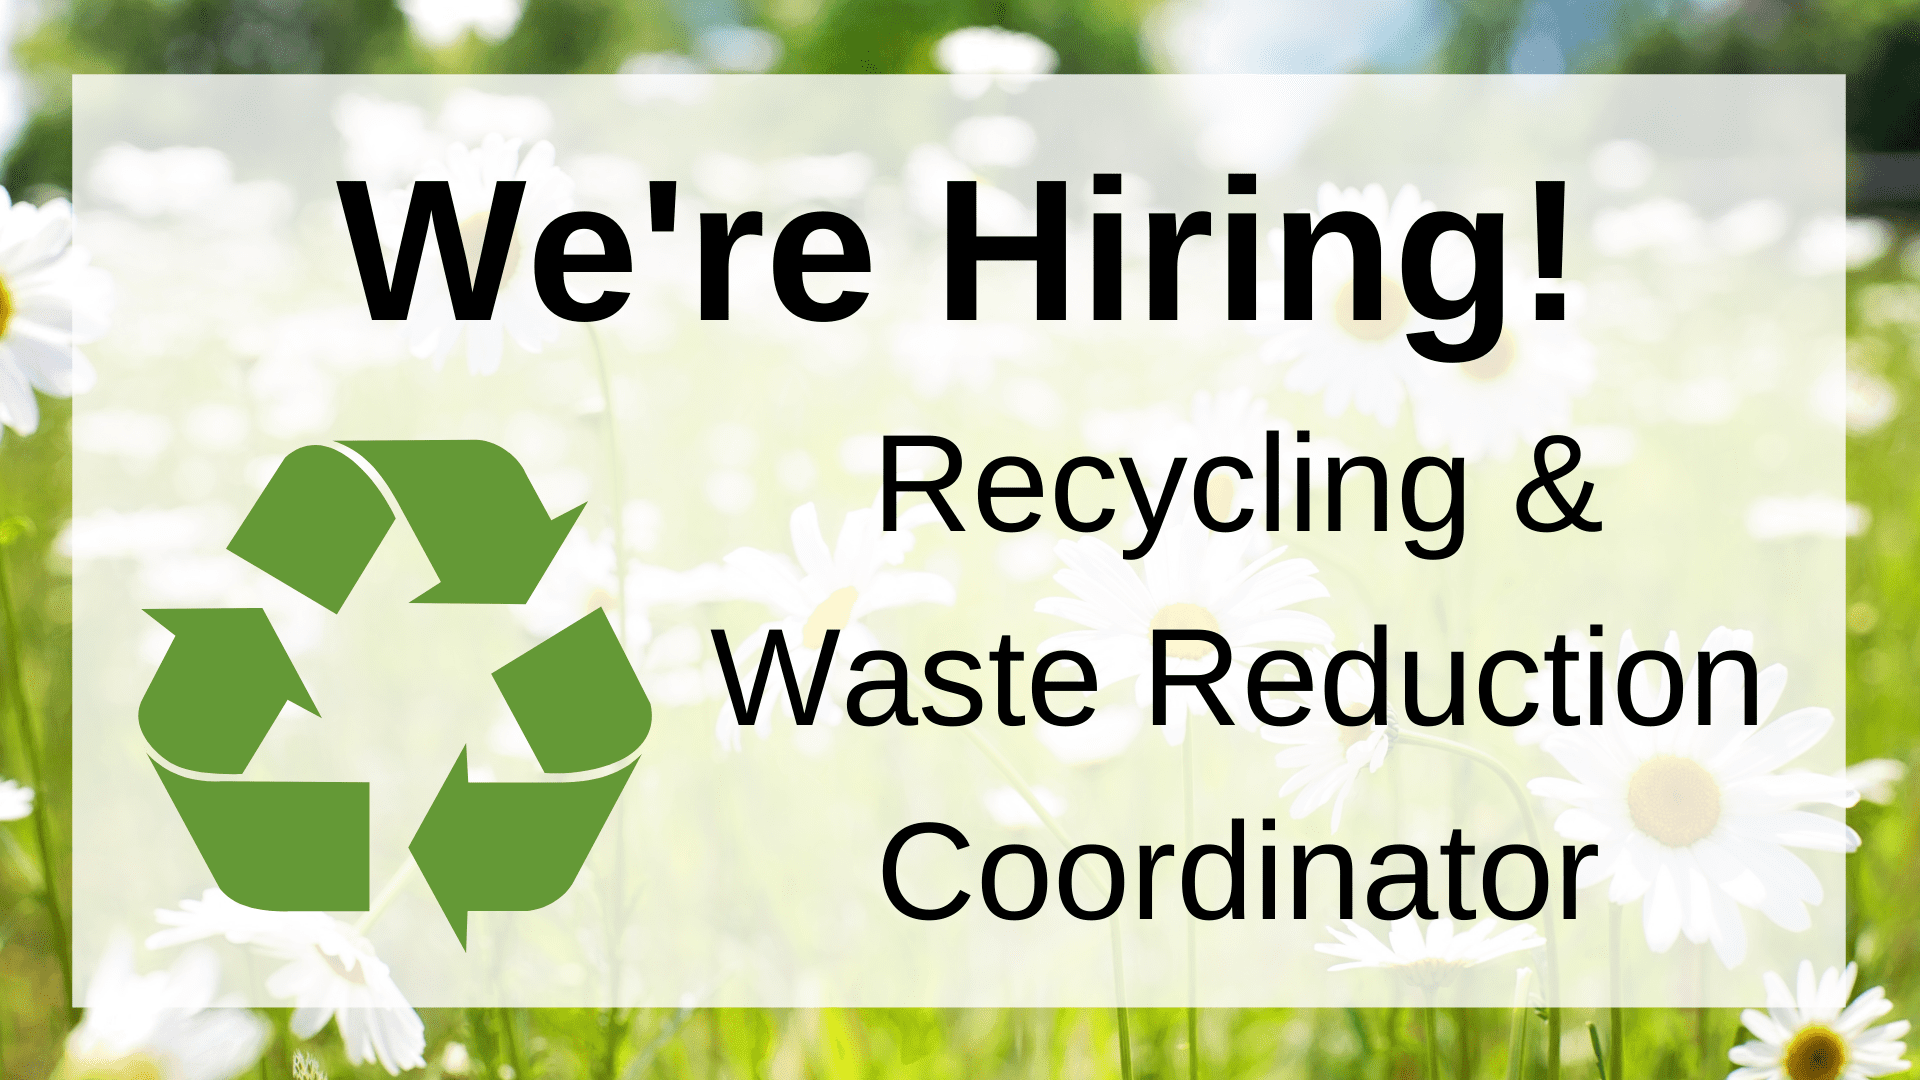 Recycling and Waste Reduction Coordinator